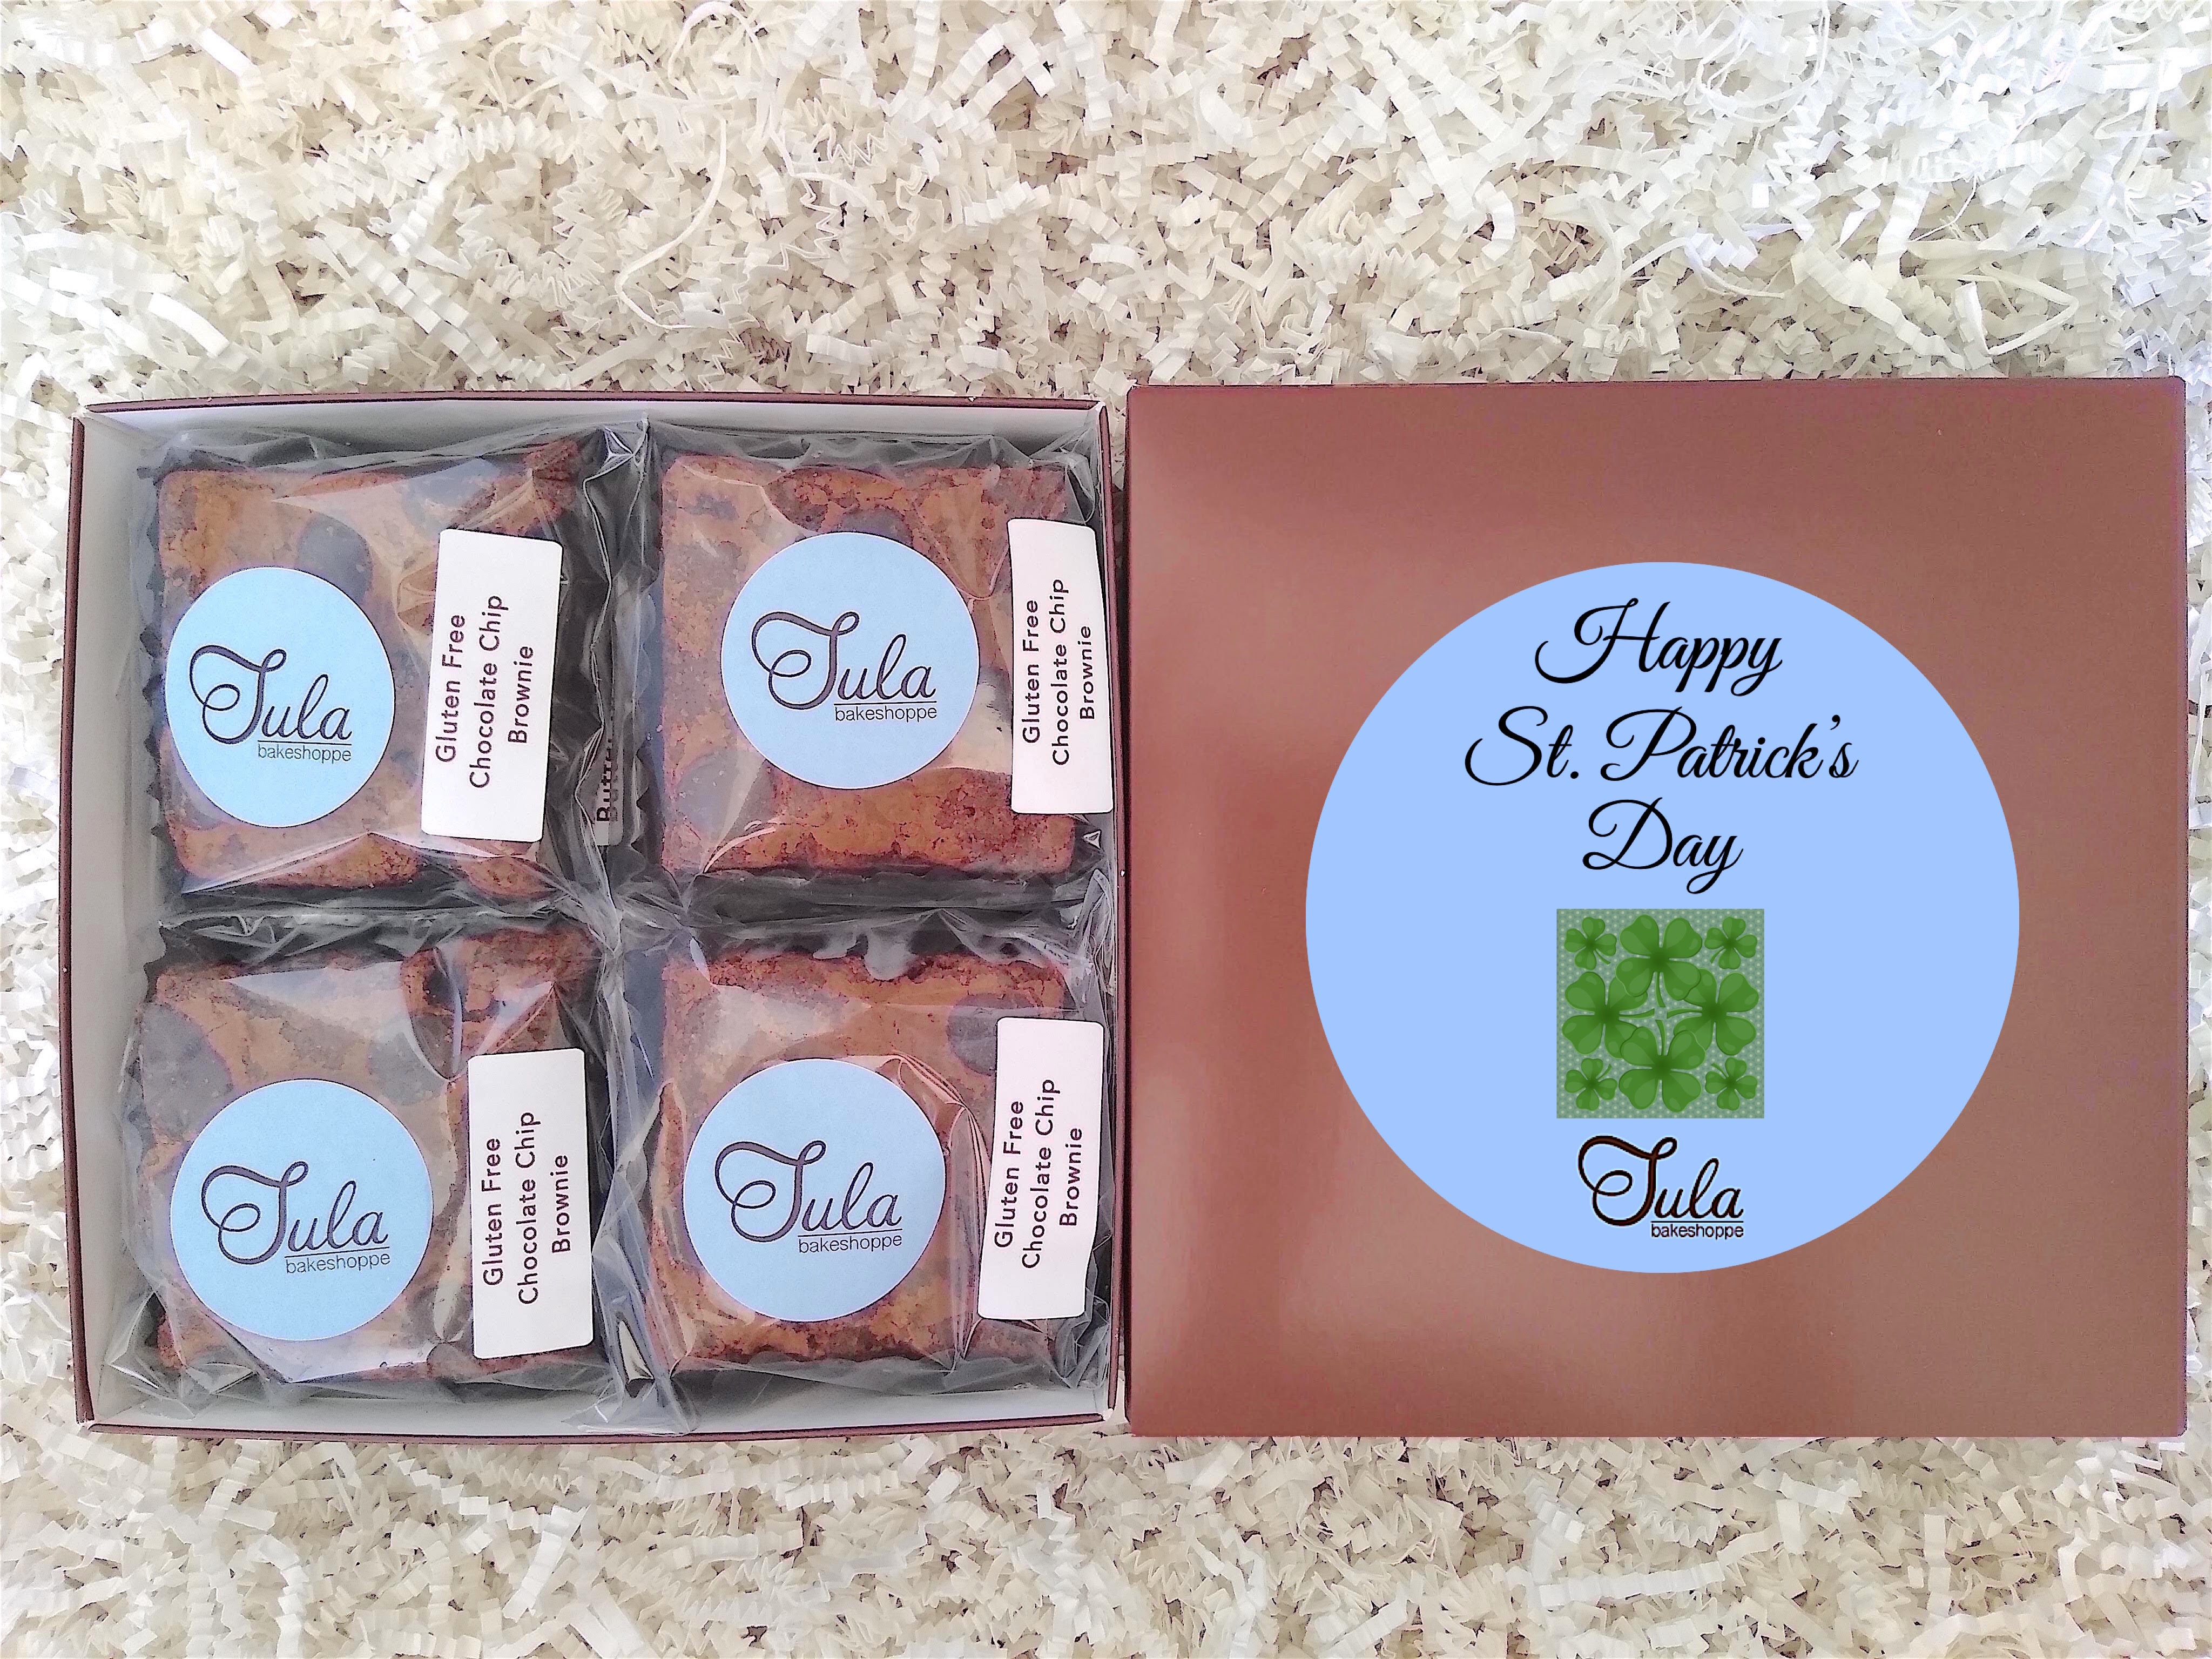 Gluten Free Saint Patricks Day Ireland Shamrock Wheat-Free Chocolate Chip Brownies Gourmet Food Gift Basket